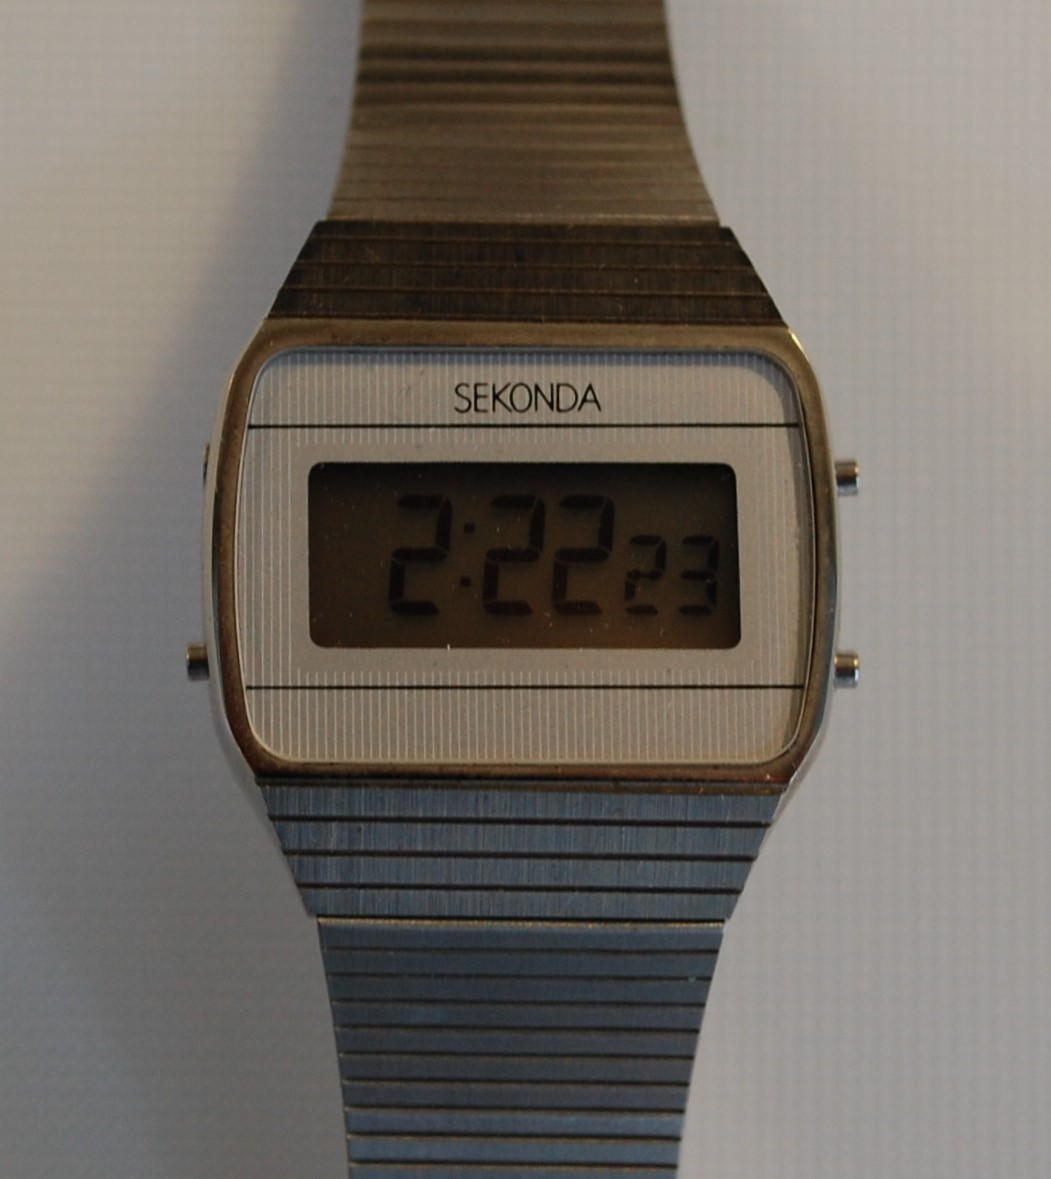 sekonda chronograph watch instructions